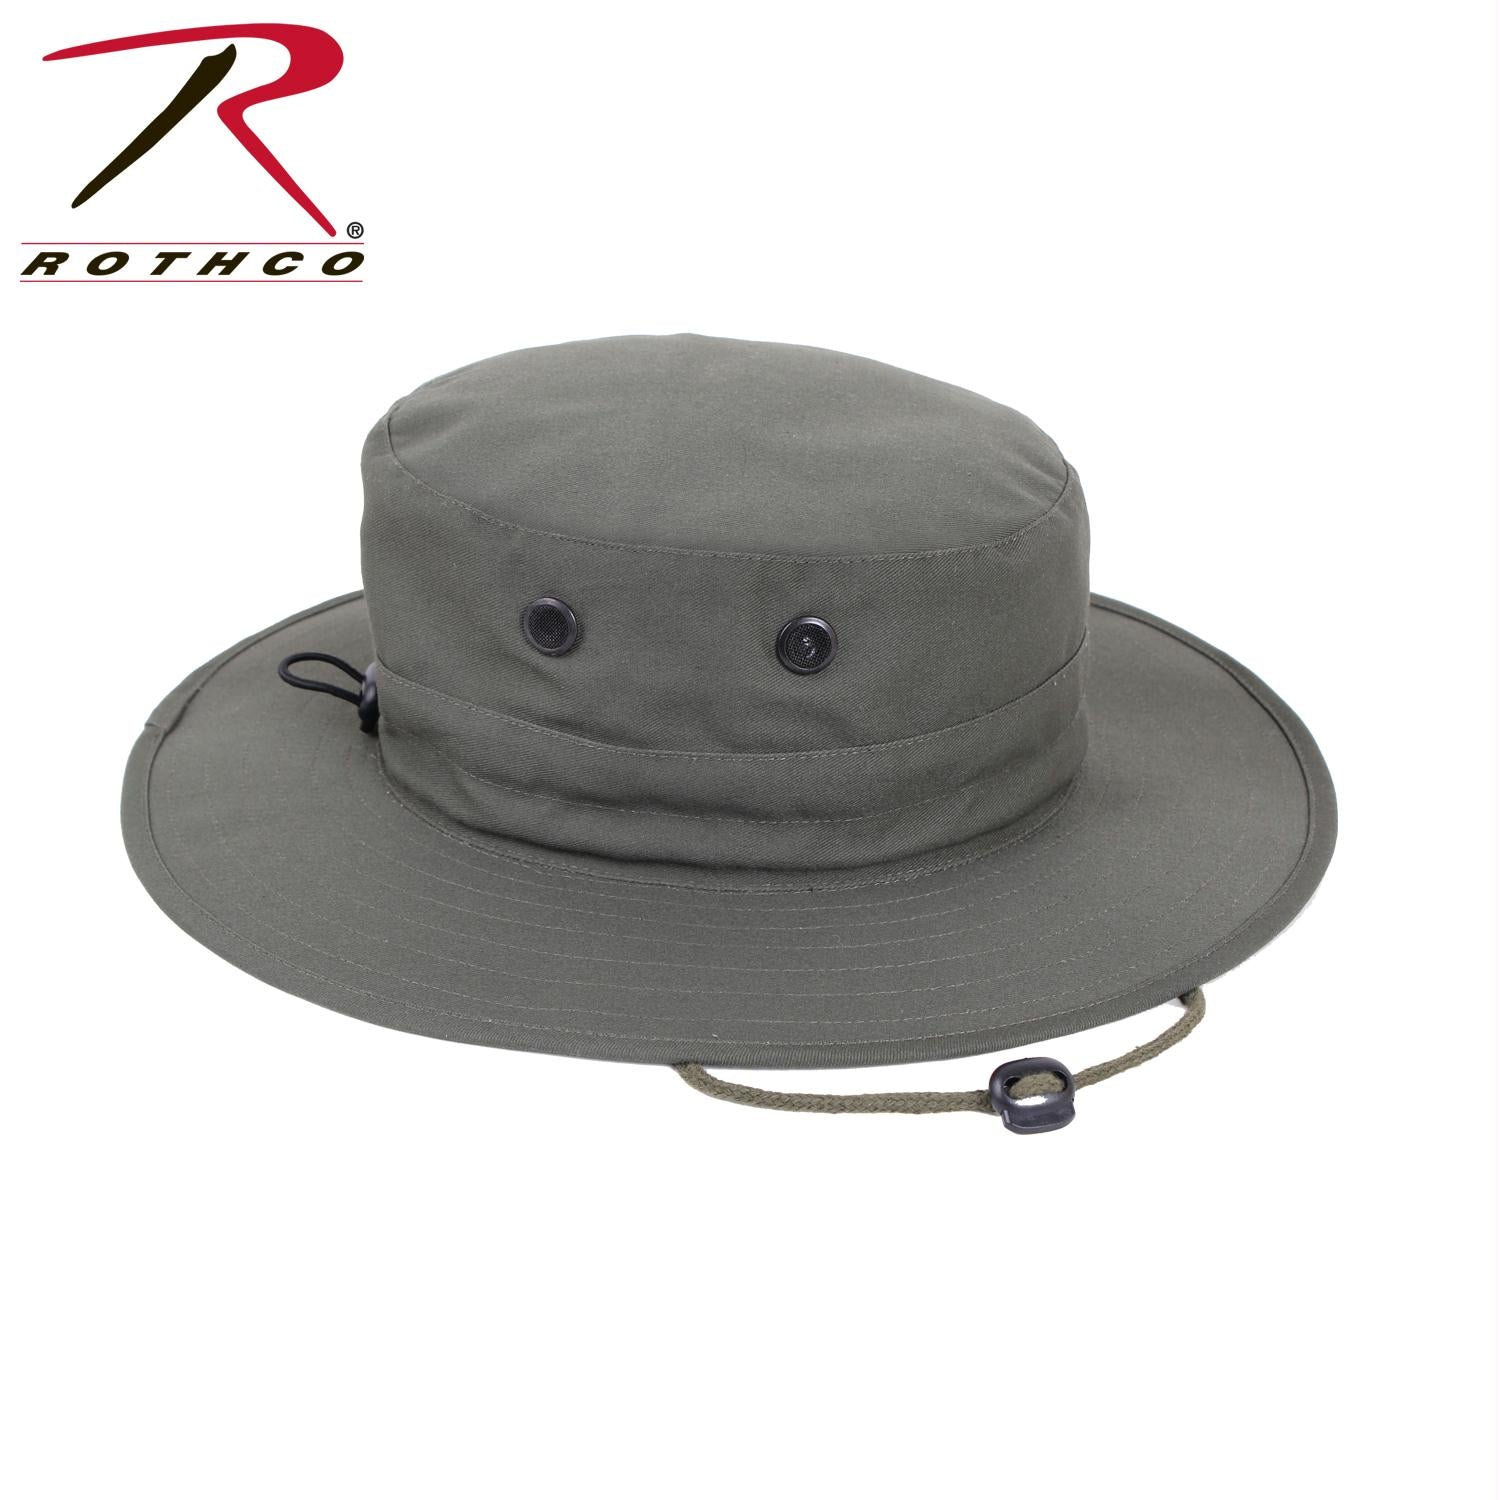 Rothco Adjustable Boonie Hat - Olive Drab / One Size